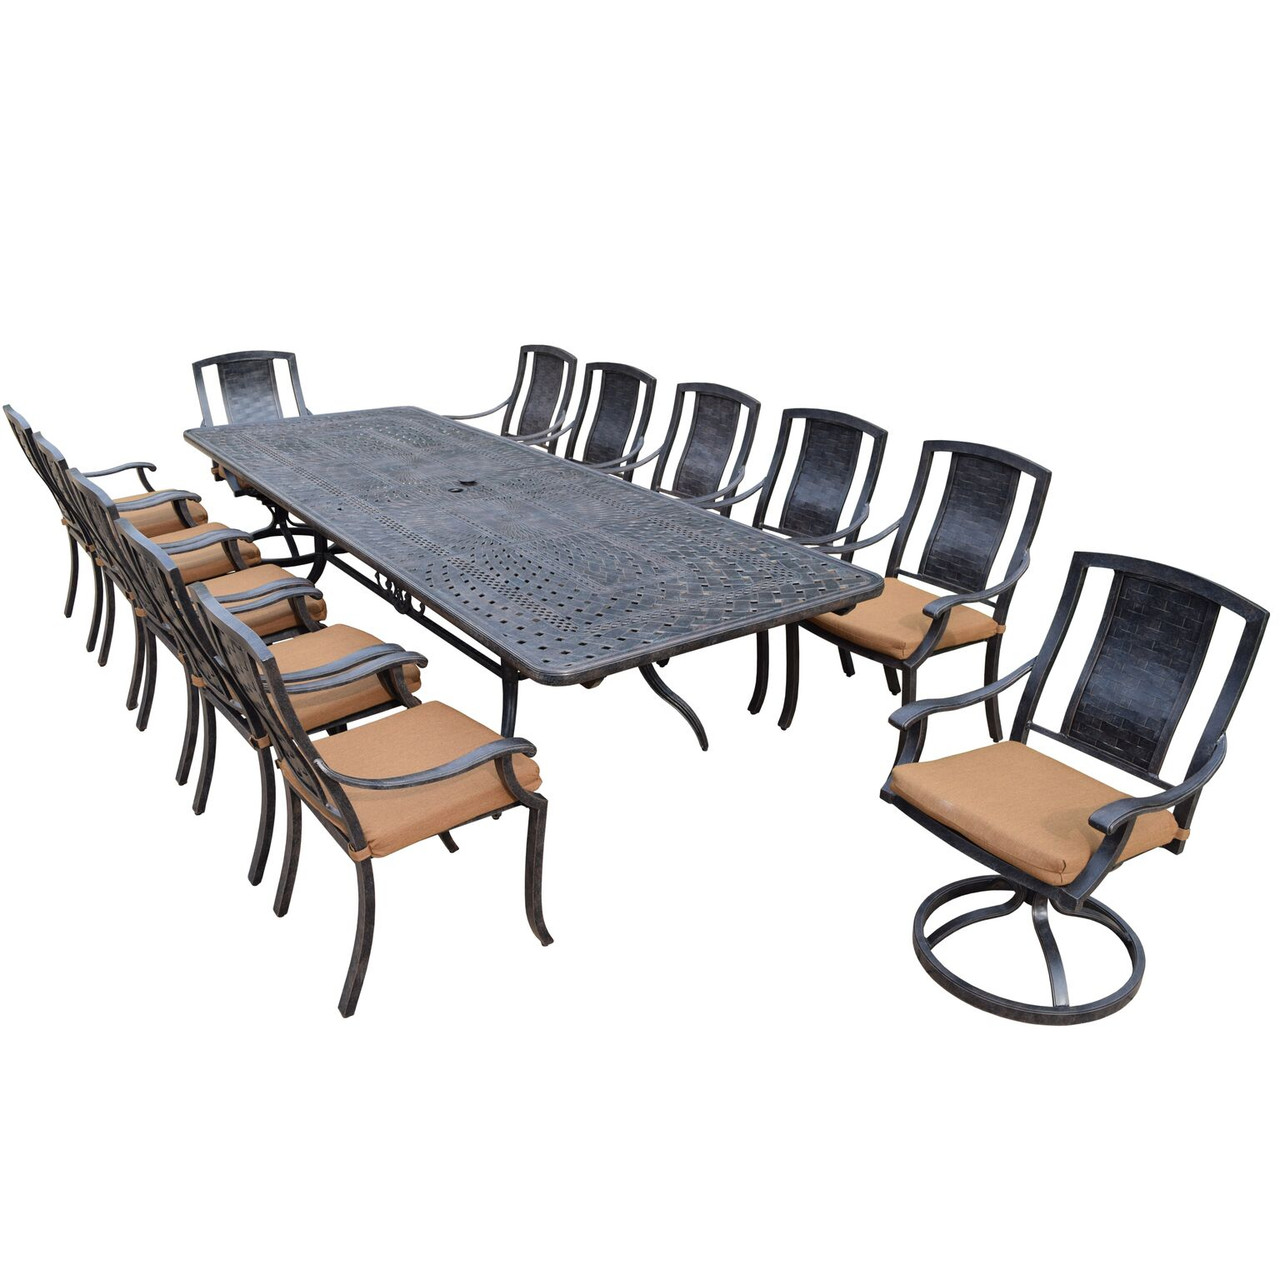 13 Piece Aged Black Finish Aluminum Outdoor Furniture Patio Dining